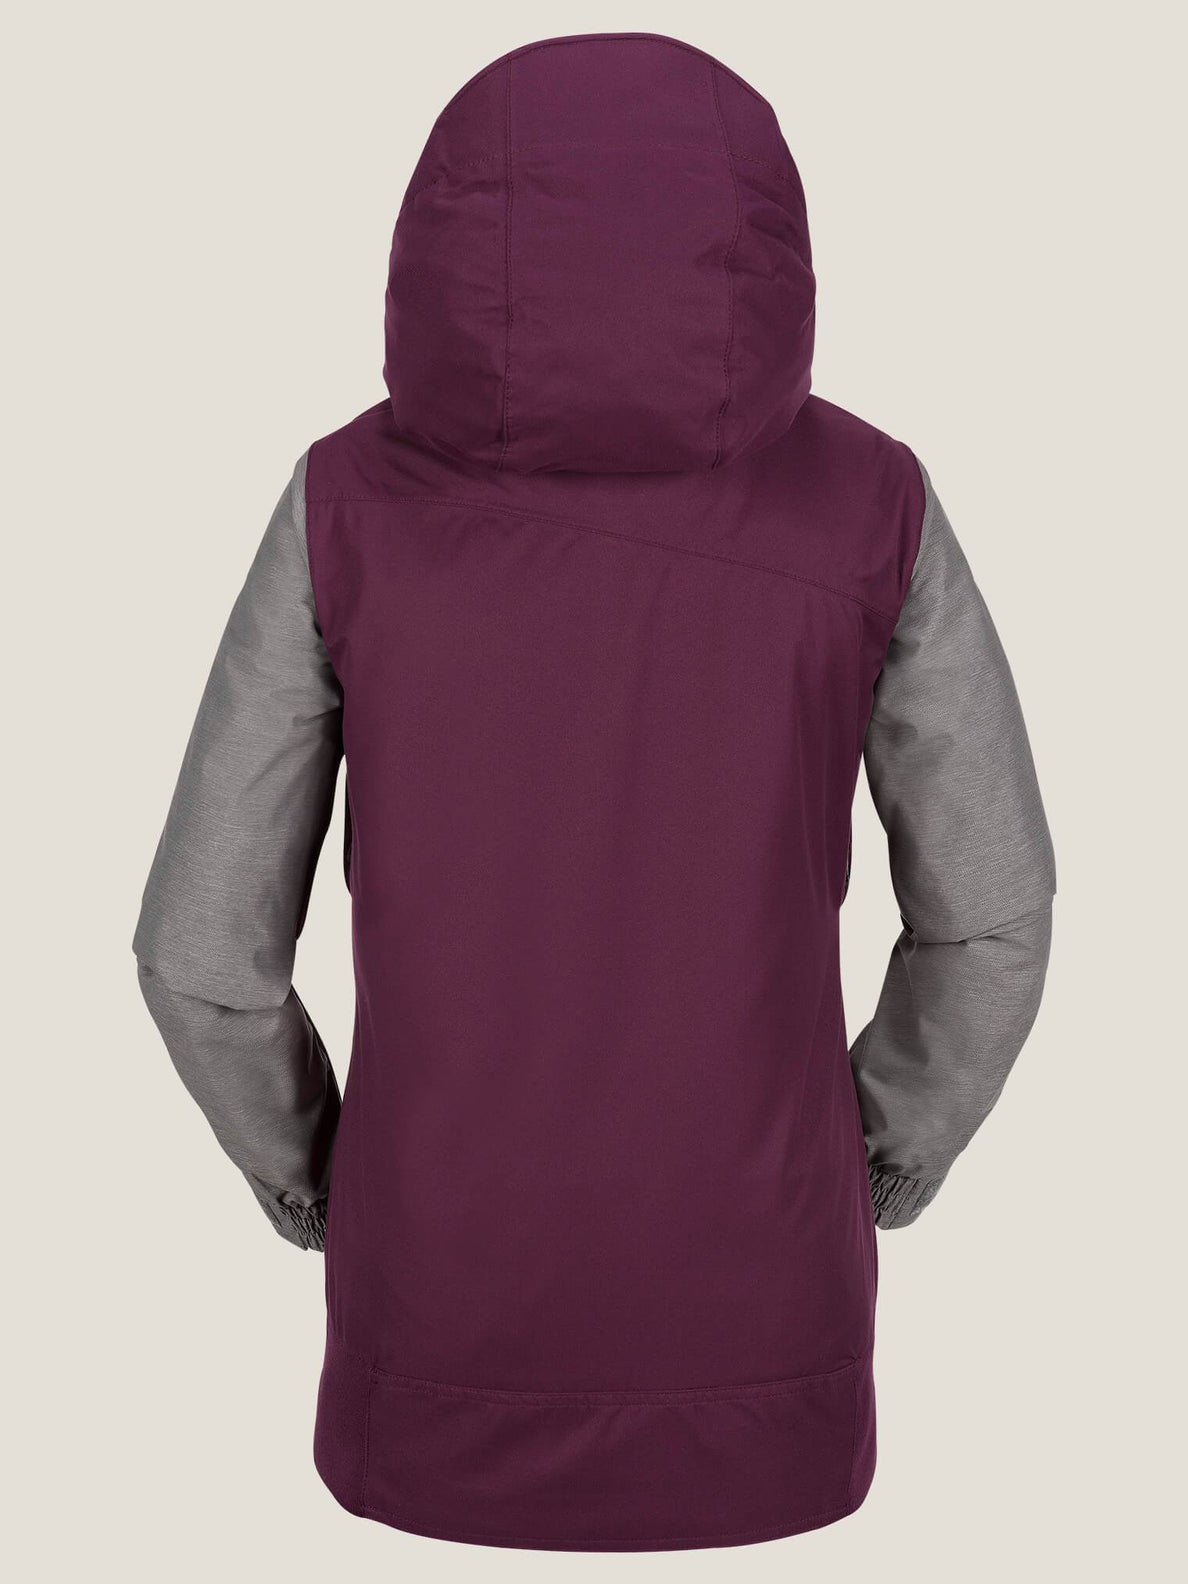 Stave Jacket In Winter Orchid, Back View